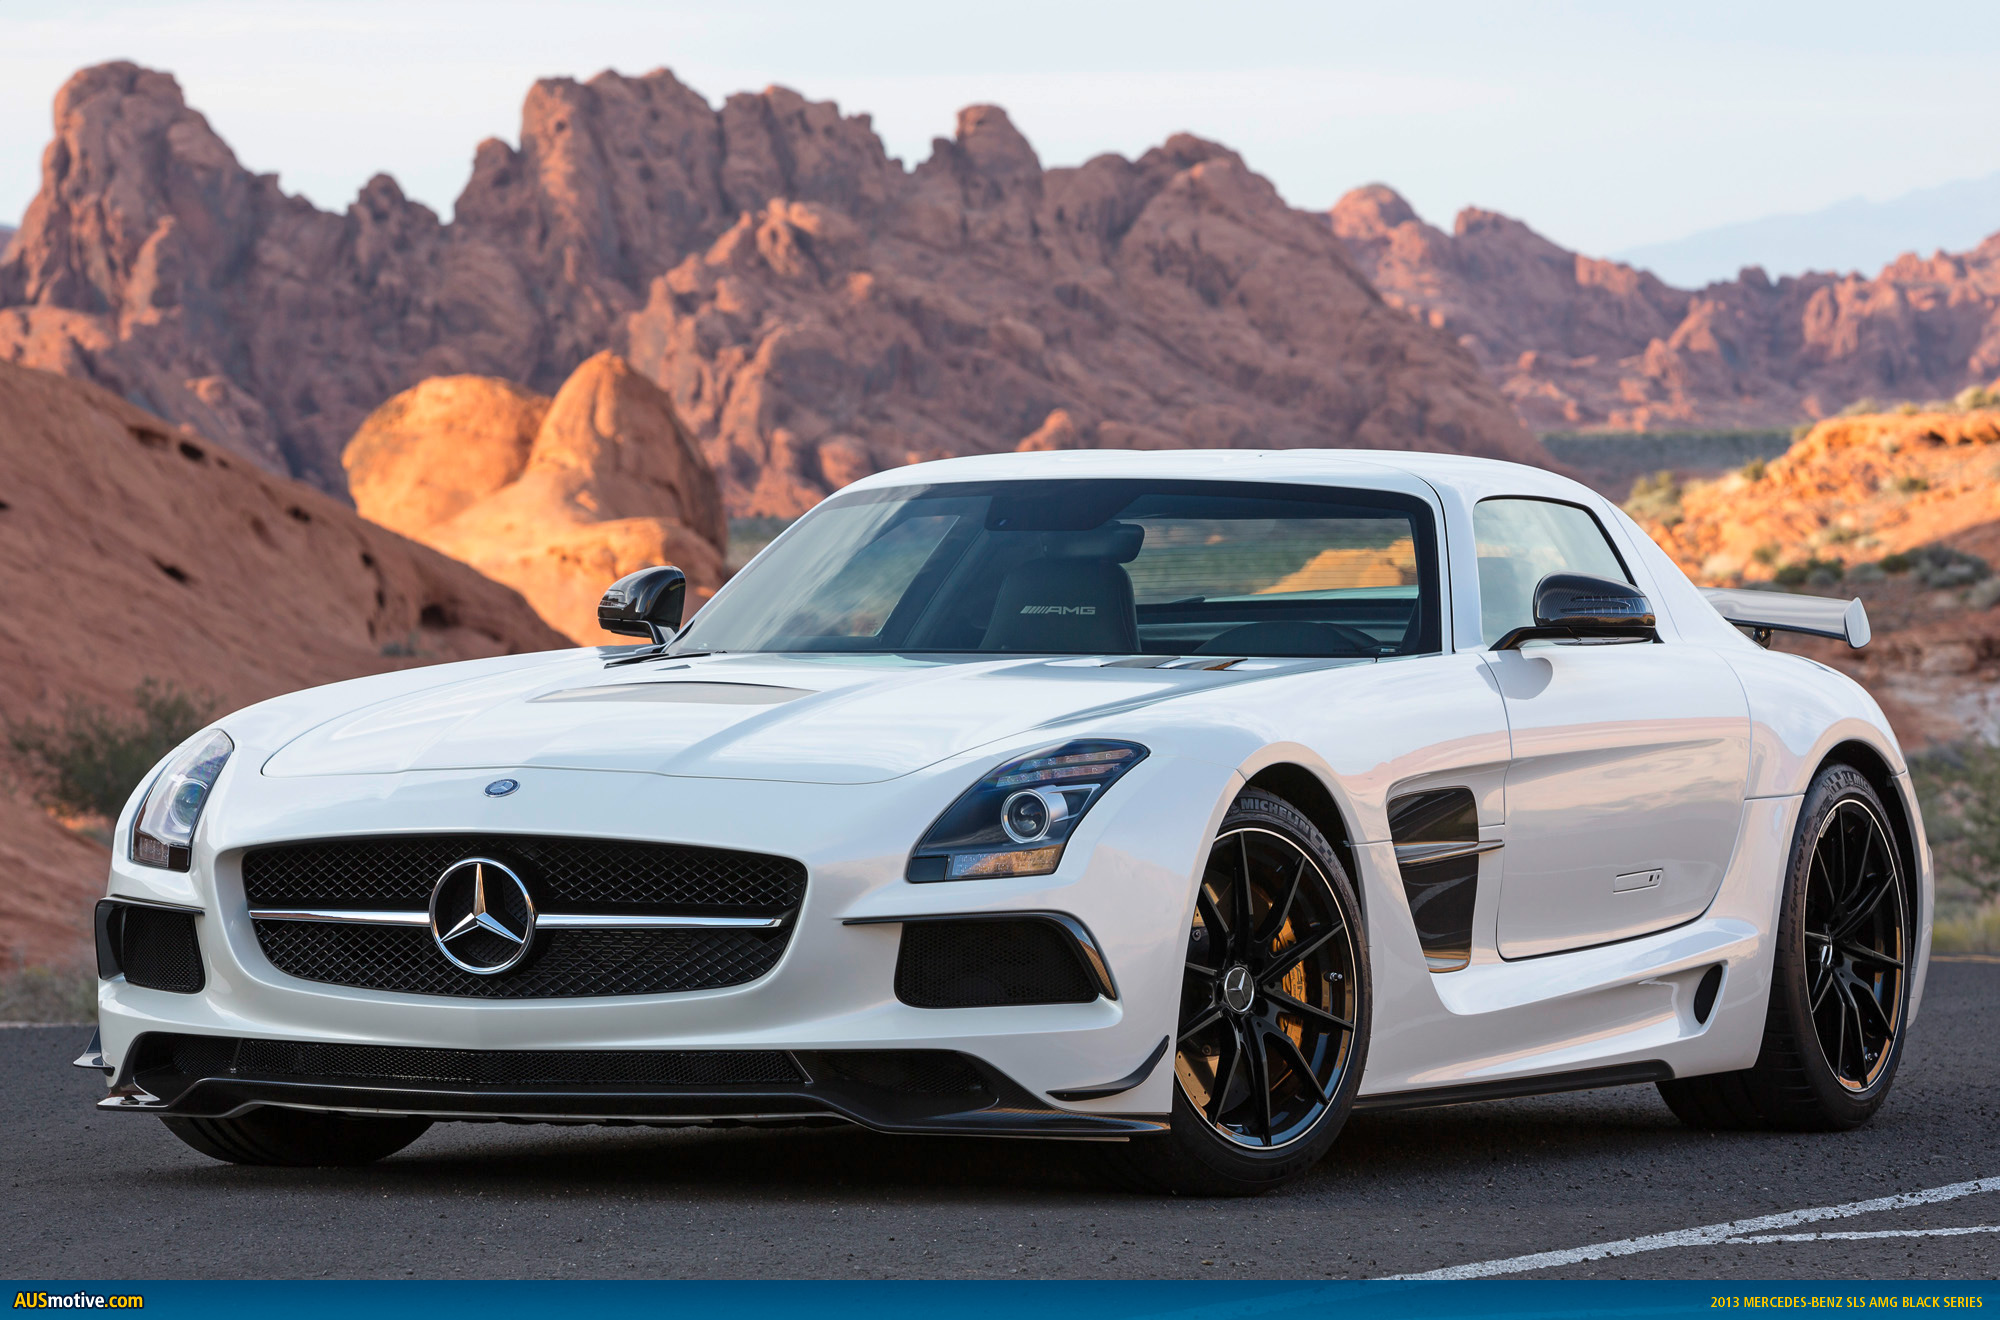 2019 Mercedes Benz SLS AMG US Version photo - 4